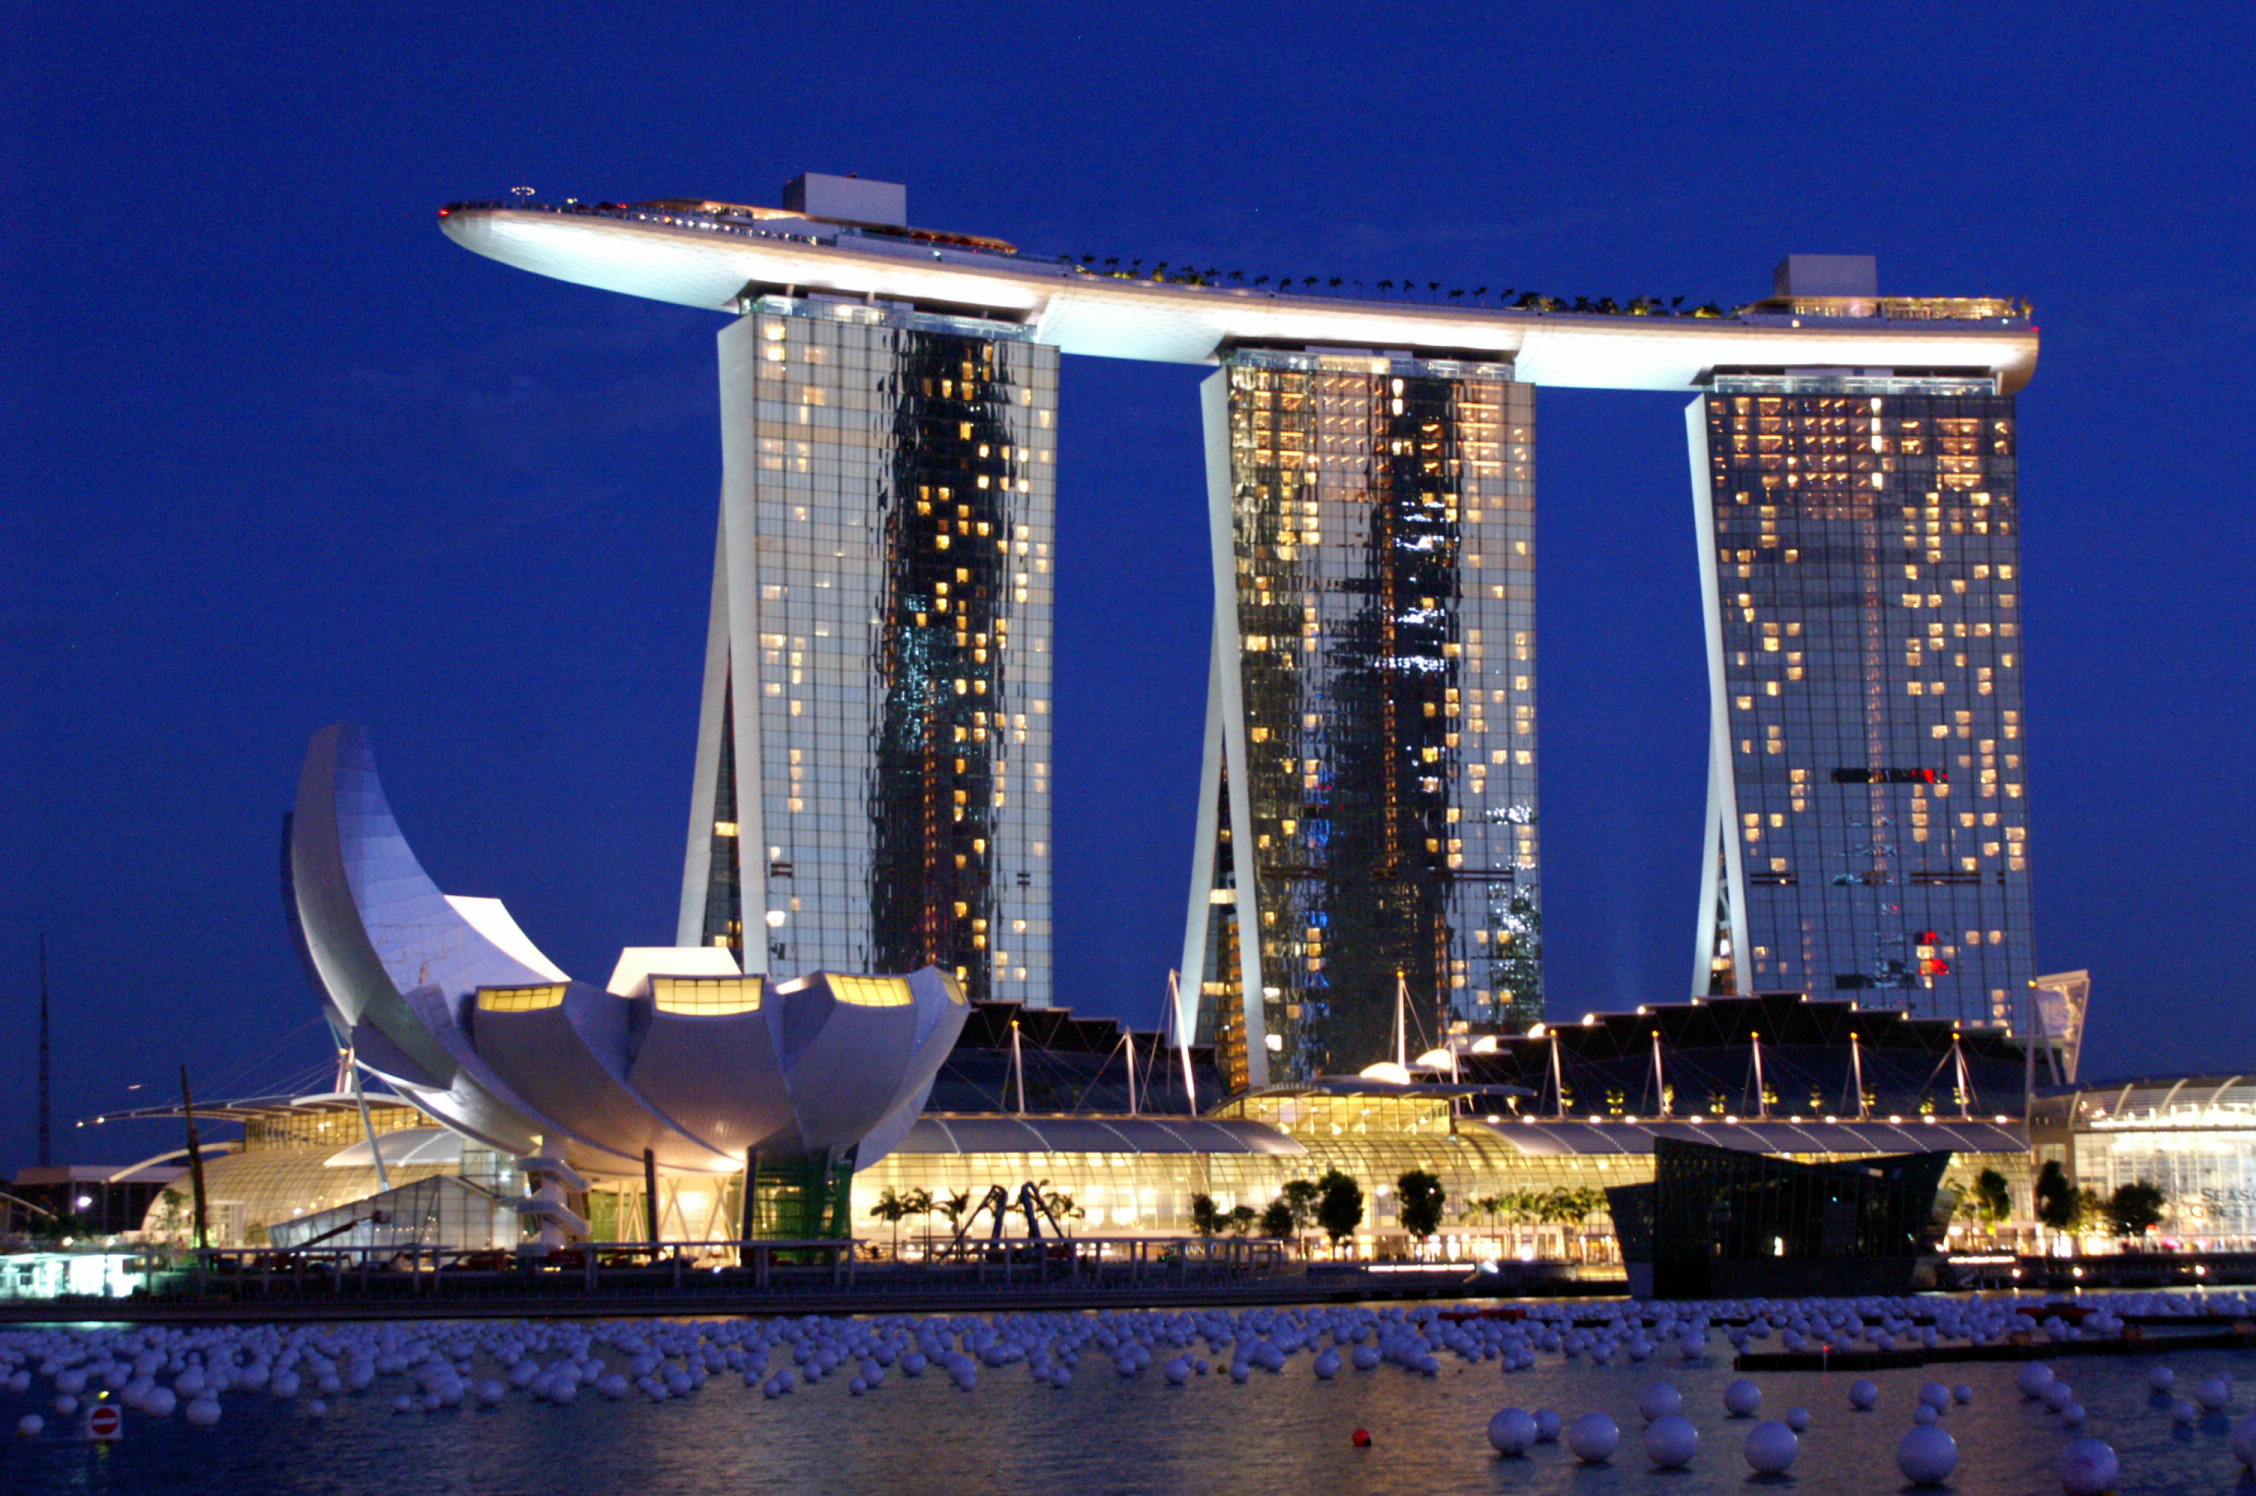 Marina Bay Sands Hotel Skypark Singapore from Waterfront Esplanade